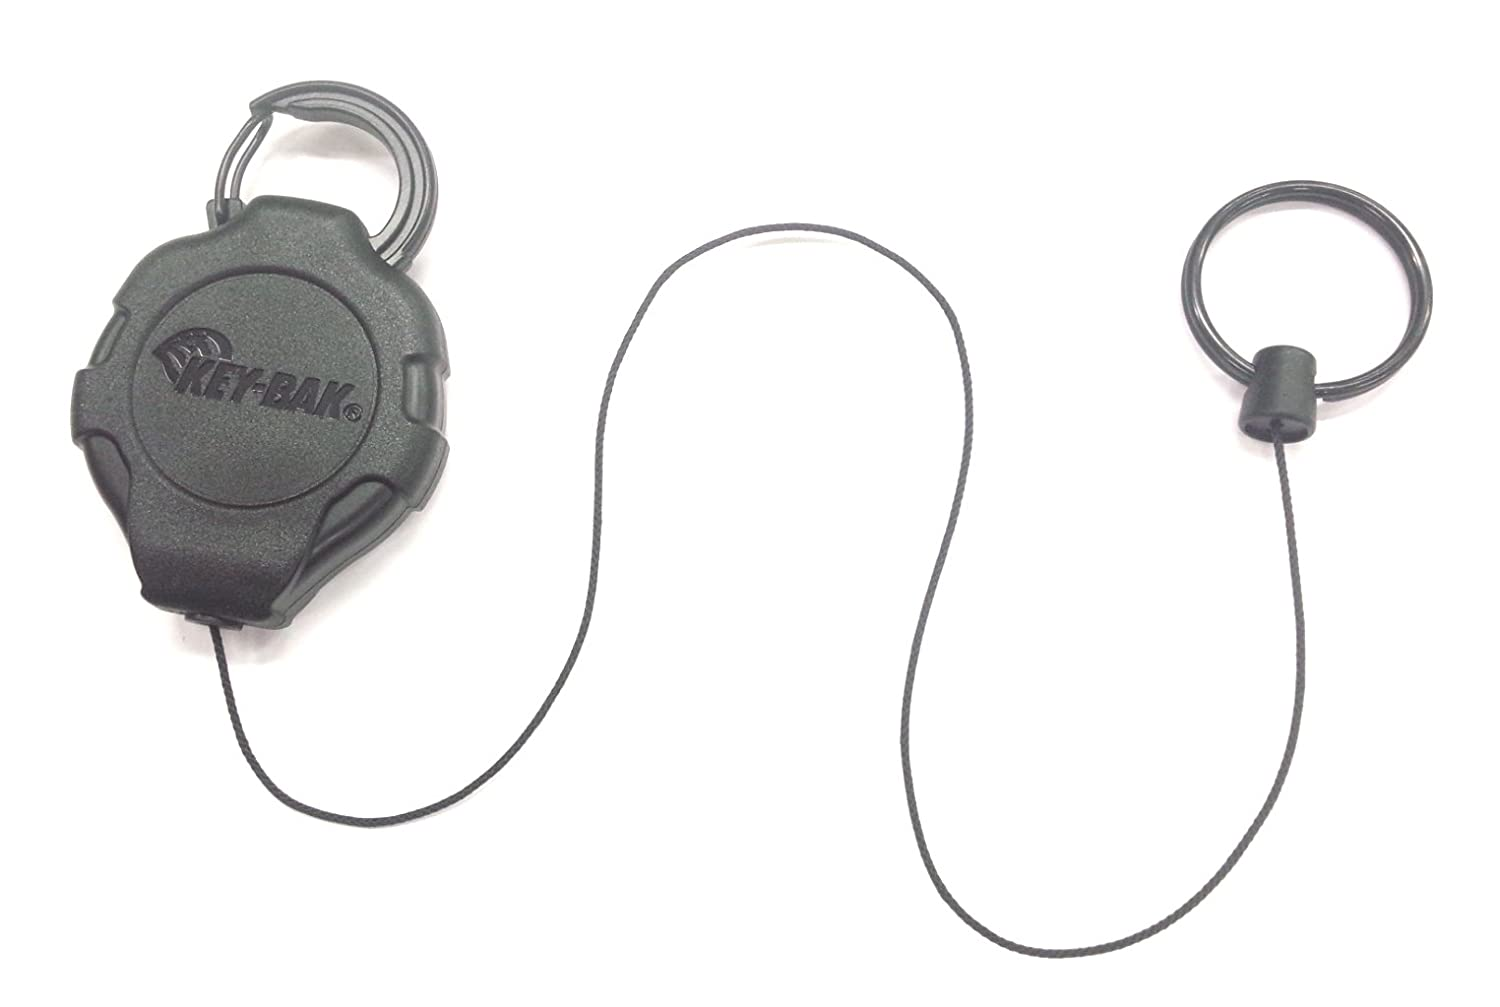 20 oz KEY-BAK Ratch-It Retractable Ratcheting Tether with 28 Kevlar Cord Carabiner Attachment Retraction Force